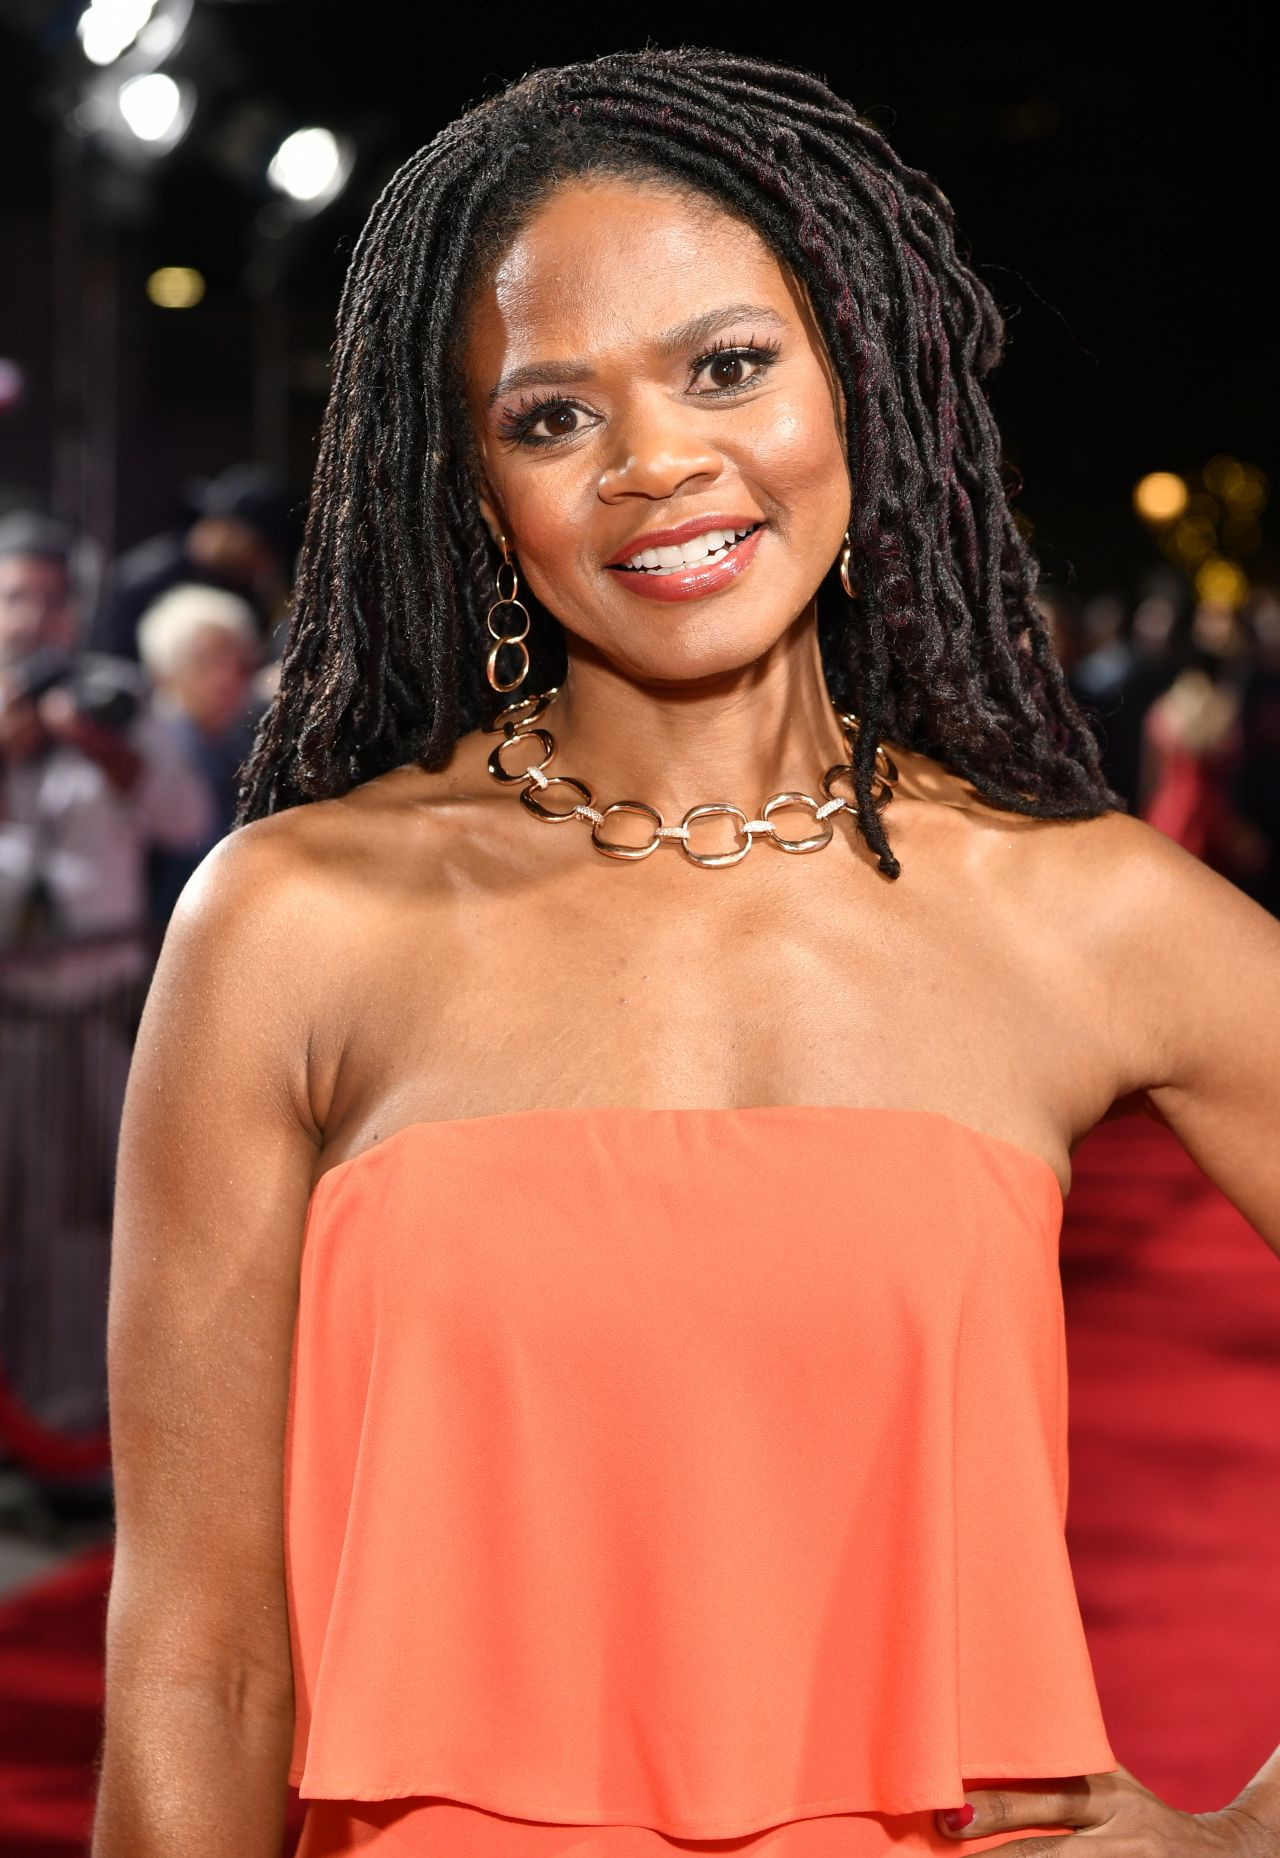 Kimberly Elise Latest Photos Celebmafia